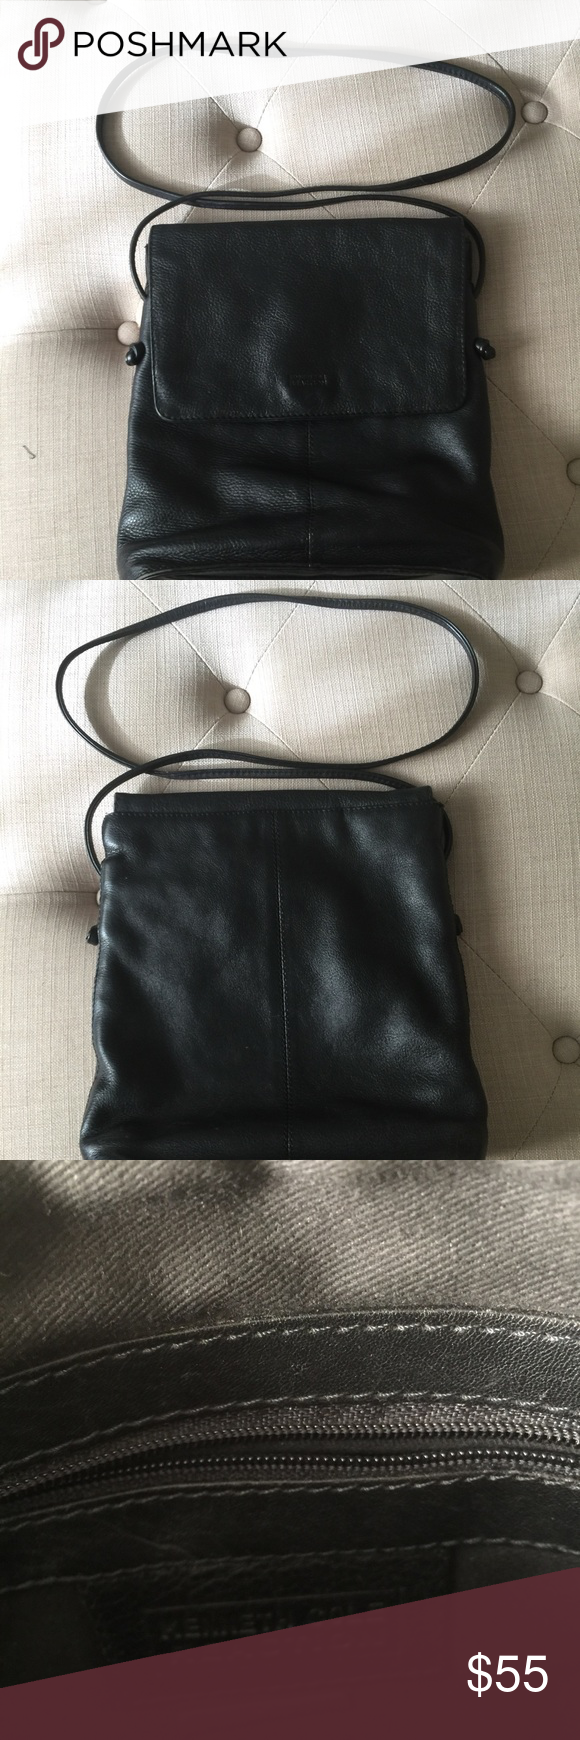 Bag Large body cross. Has pockets inside and three different compartments. Knotted end straps. A great everyday crossbody bag. Kenneth Cole Reaction Bags Crossbody Bags